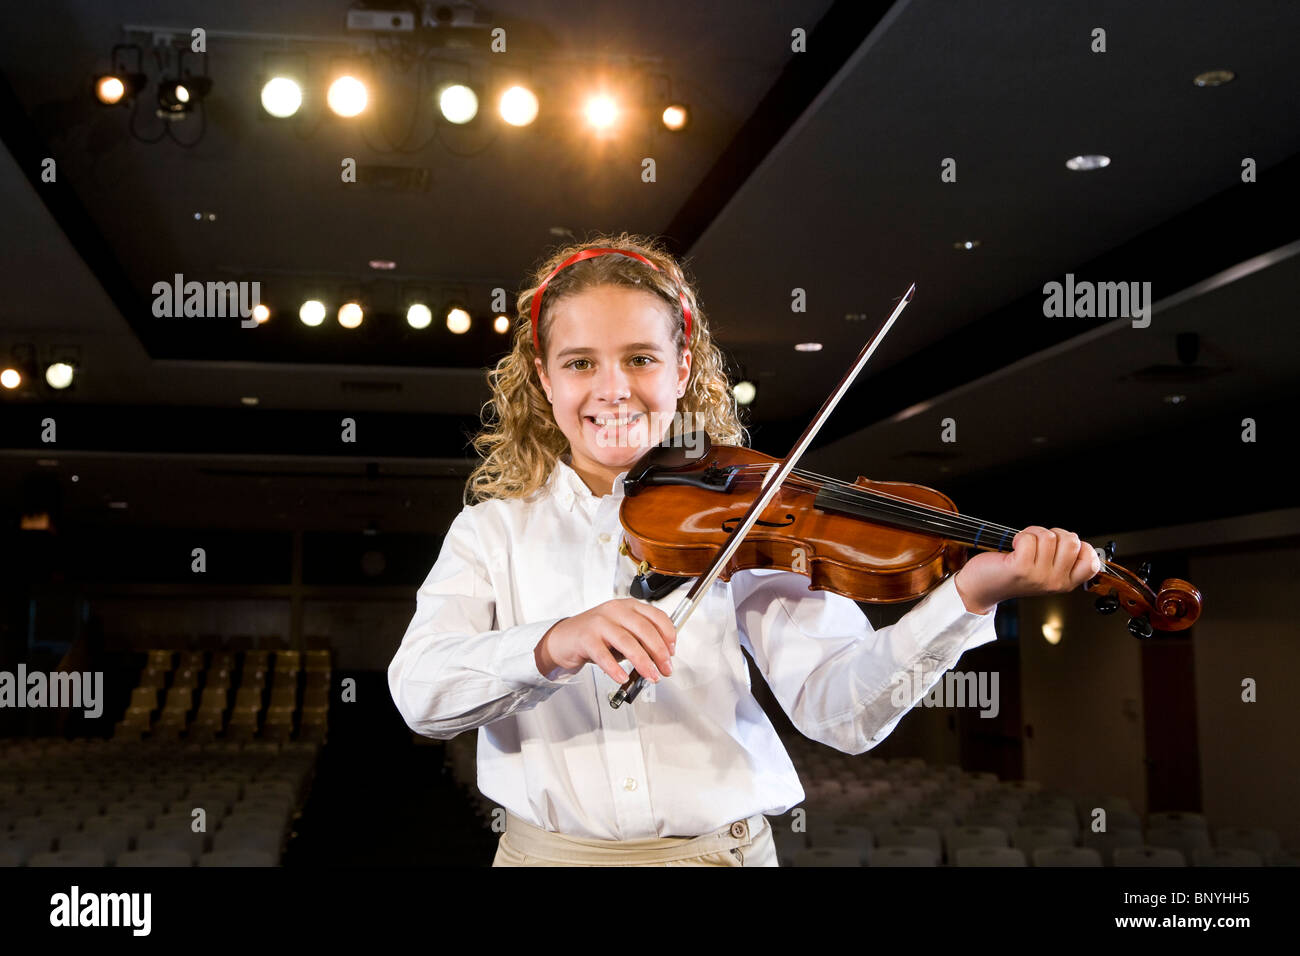 Young girl playing violin in school auditorium - Stock Image